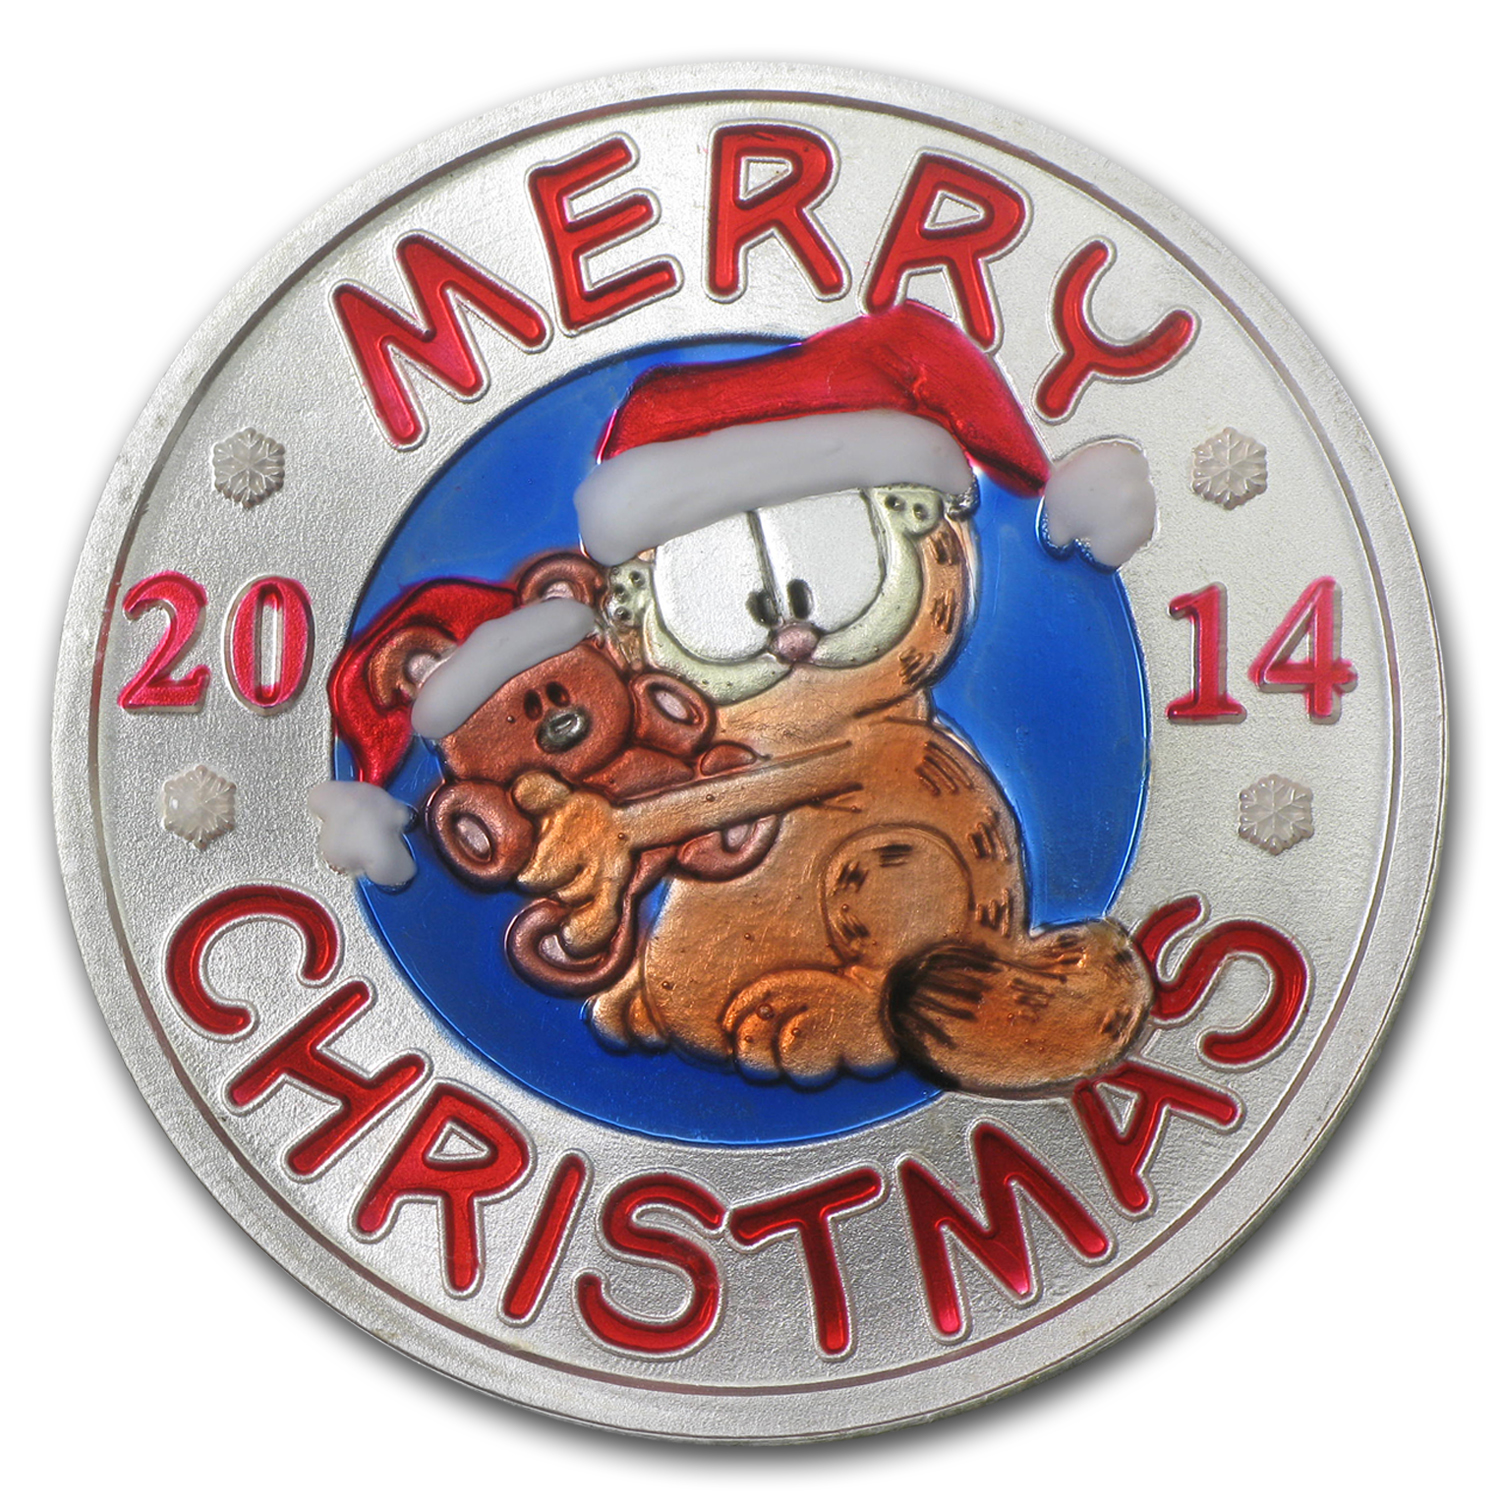 1 oz Silver Round - Merry Christmas Garfield (Enameled)